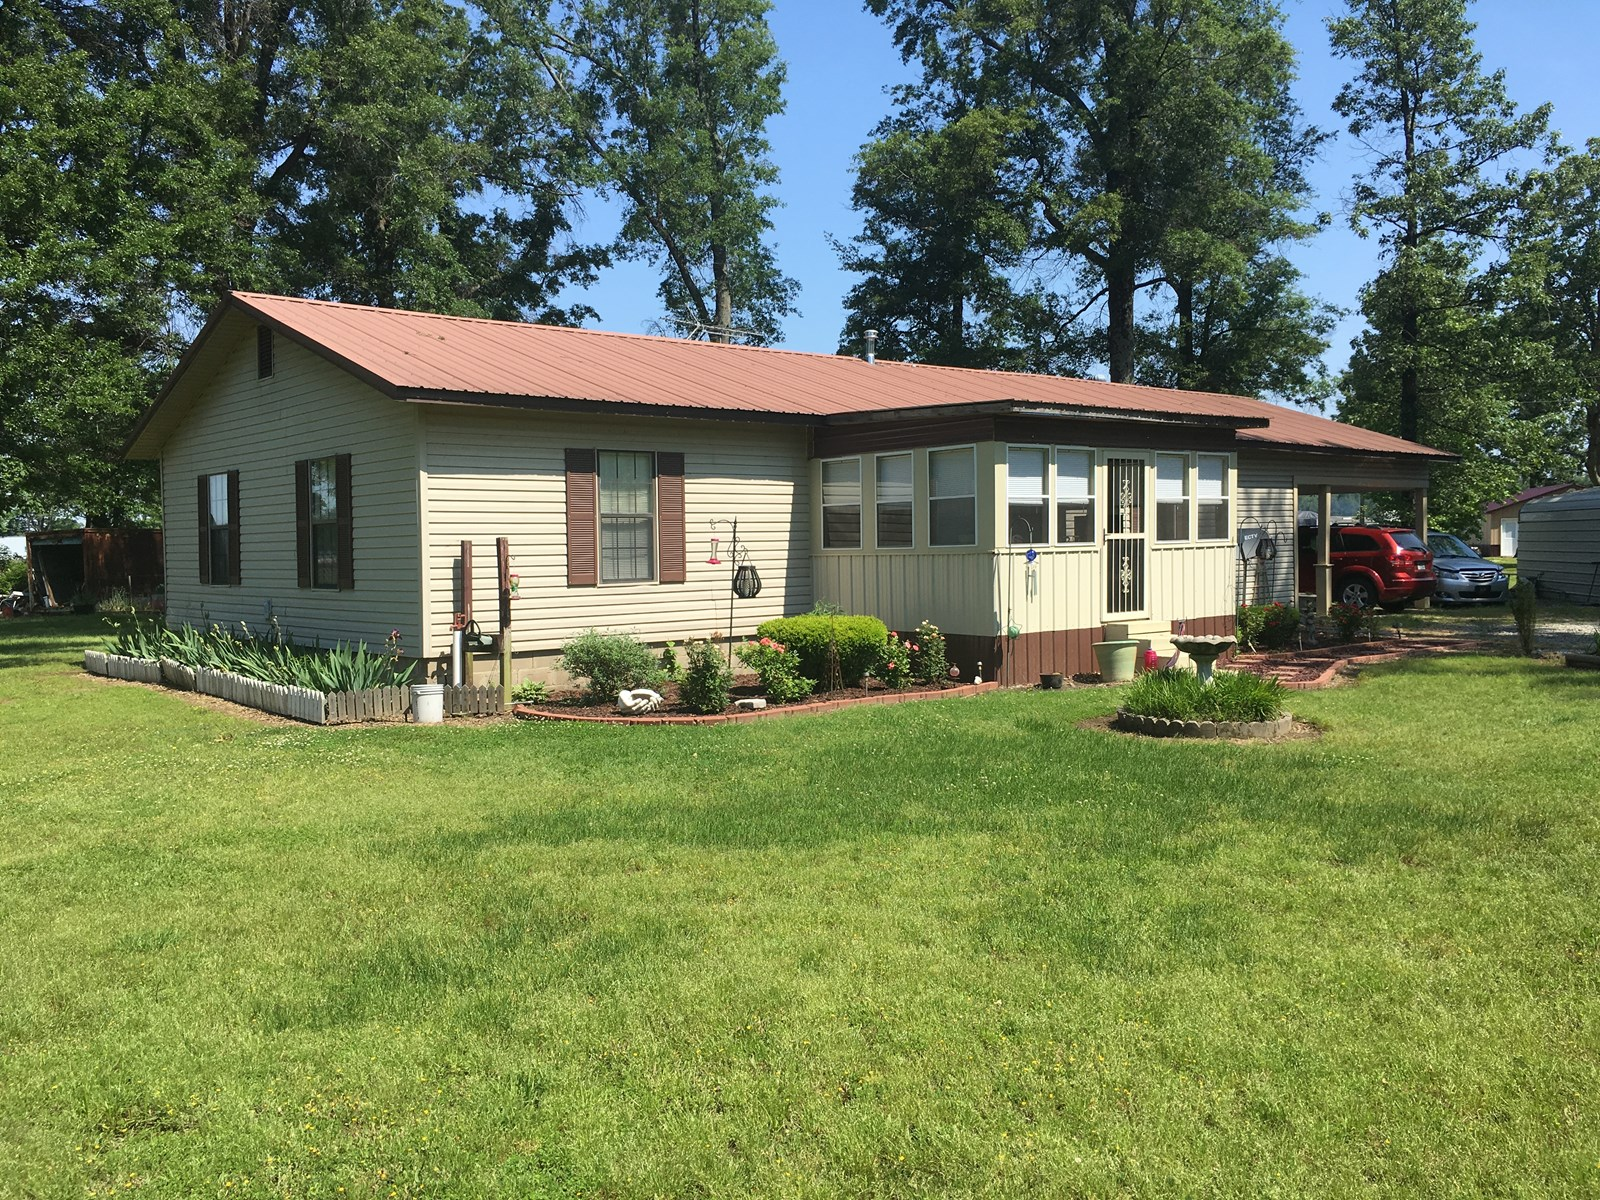 Home in town on 1.25 acres for sale north Arkansas, Corning